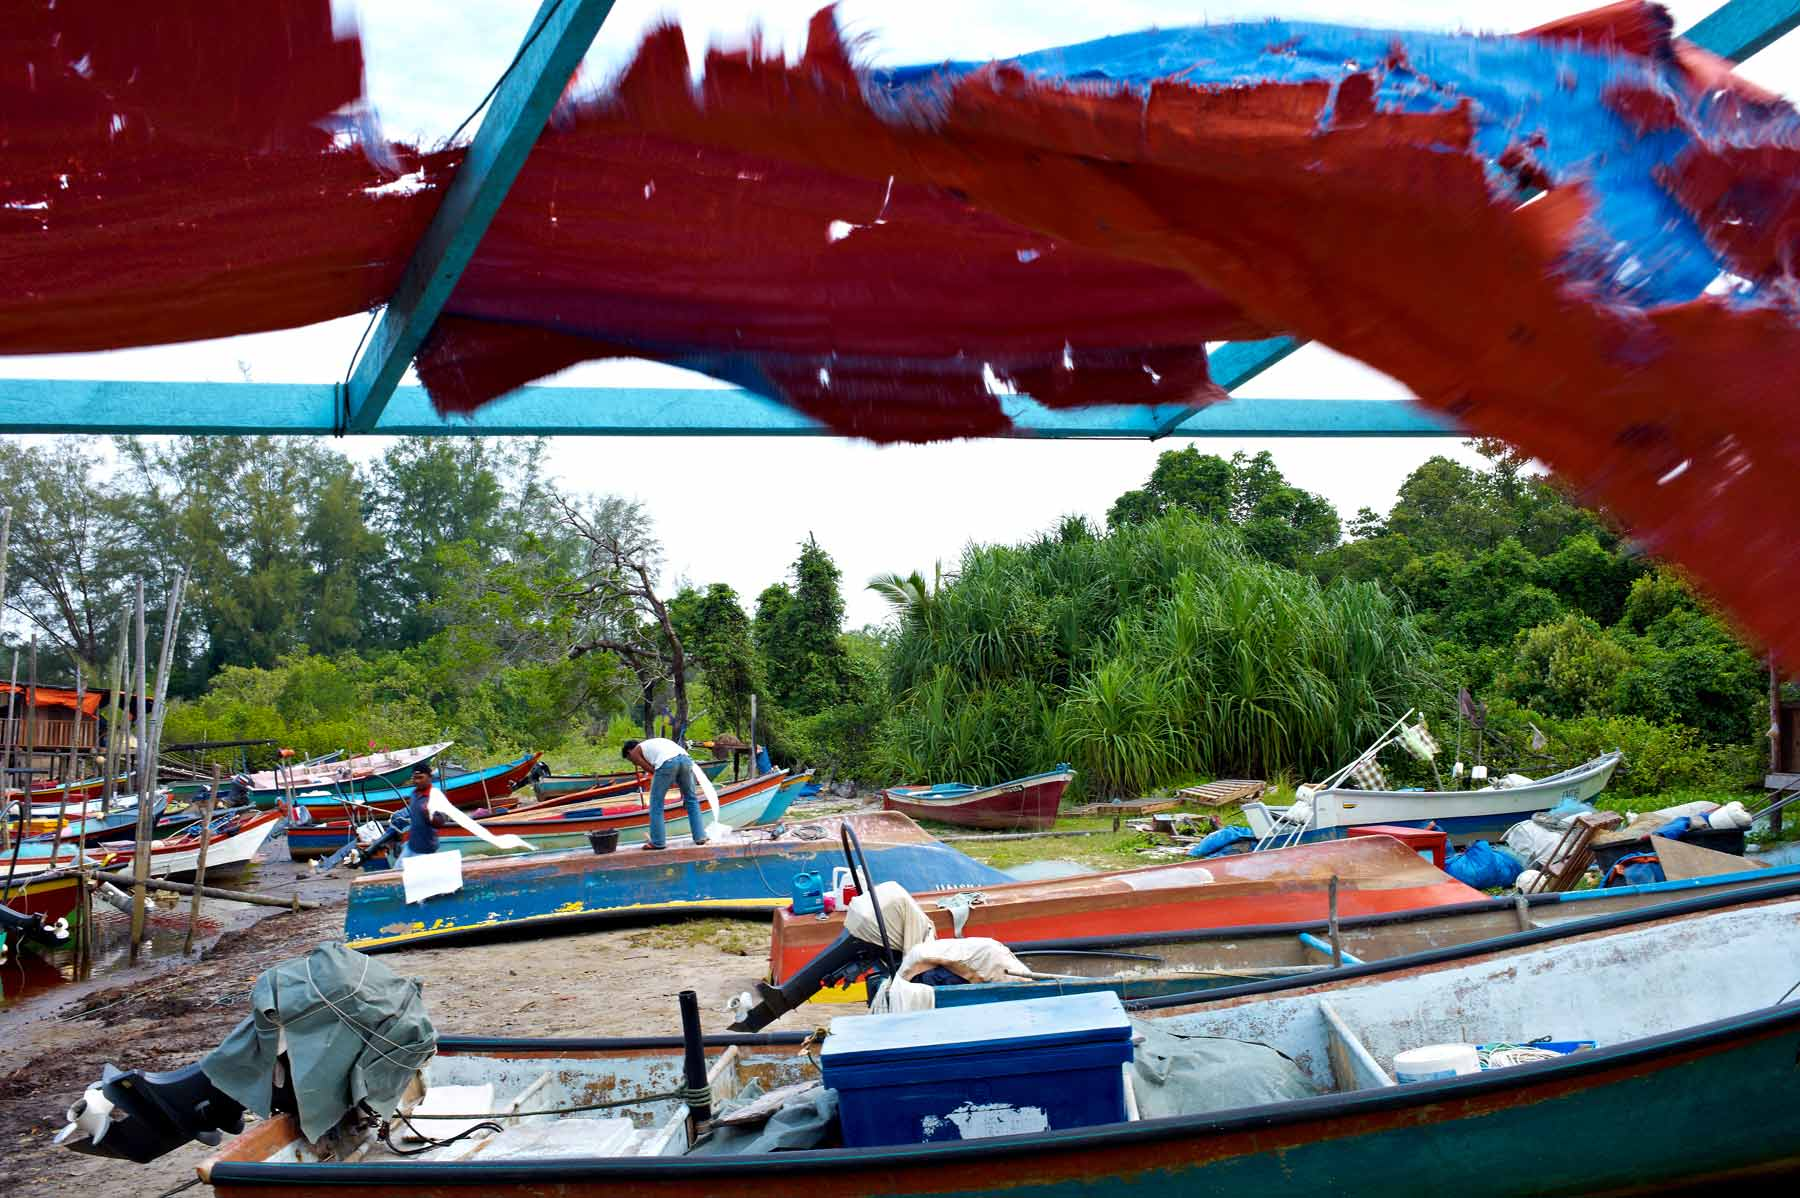 Boats line the shore of the fishing village